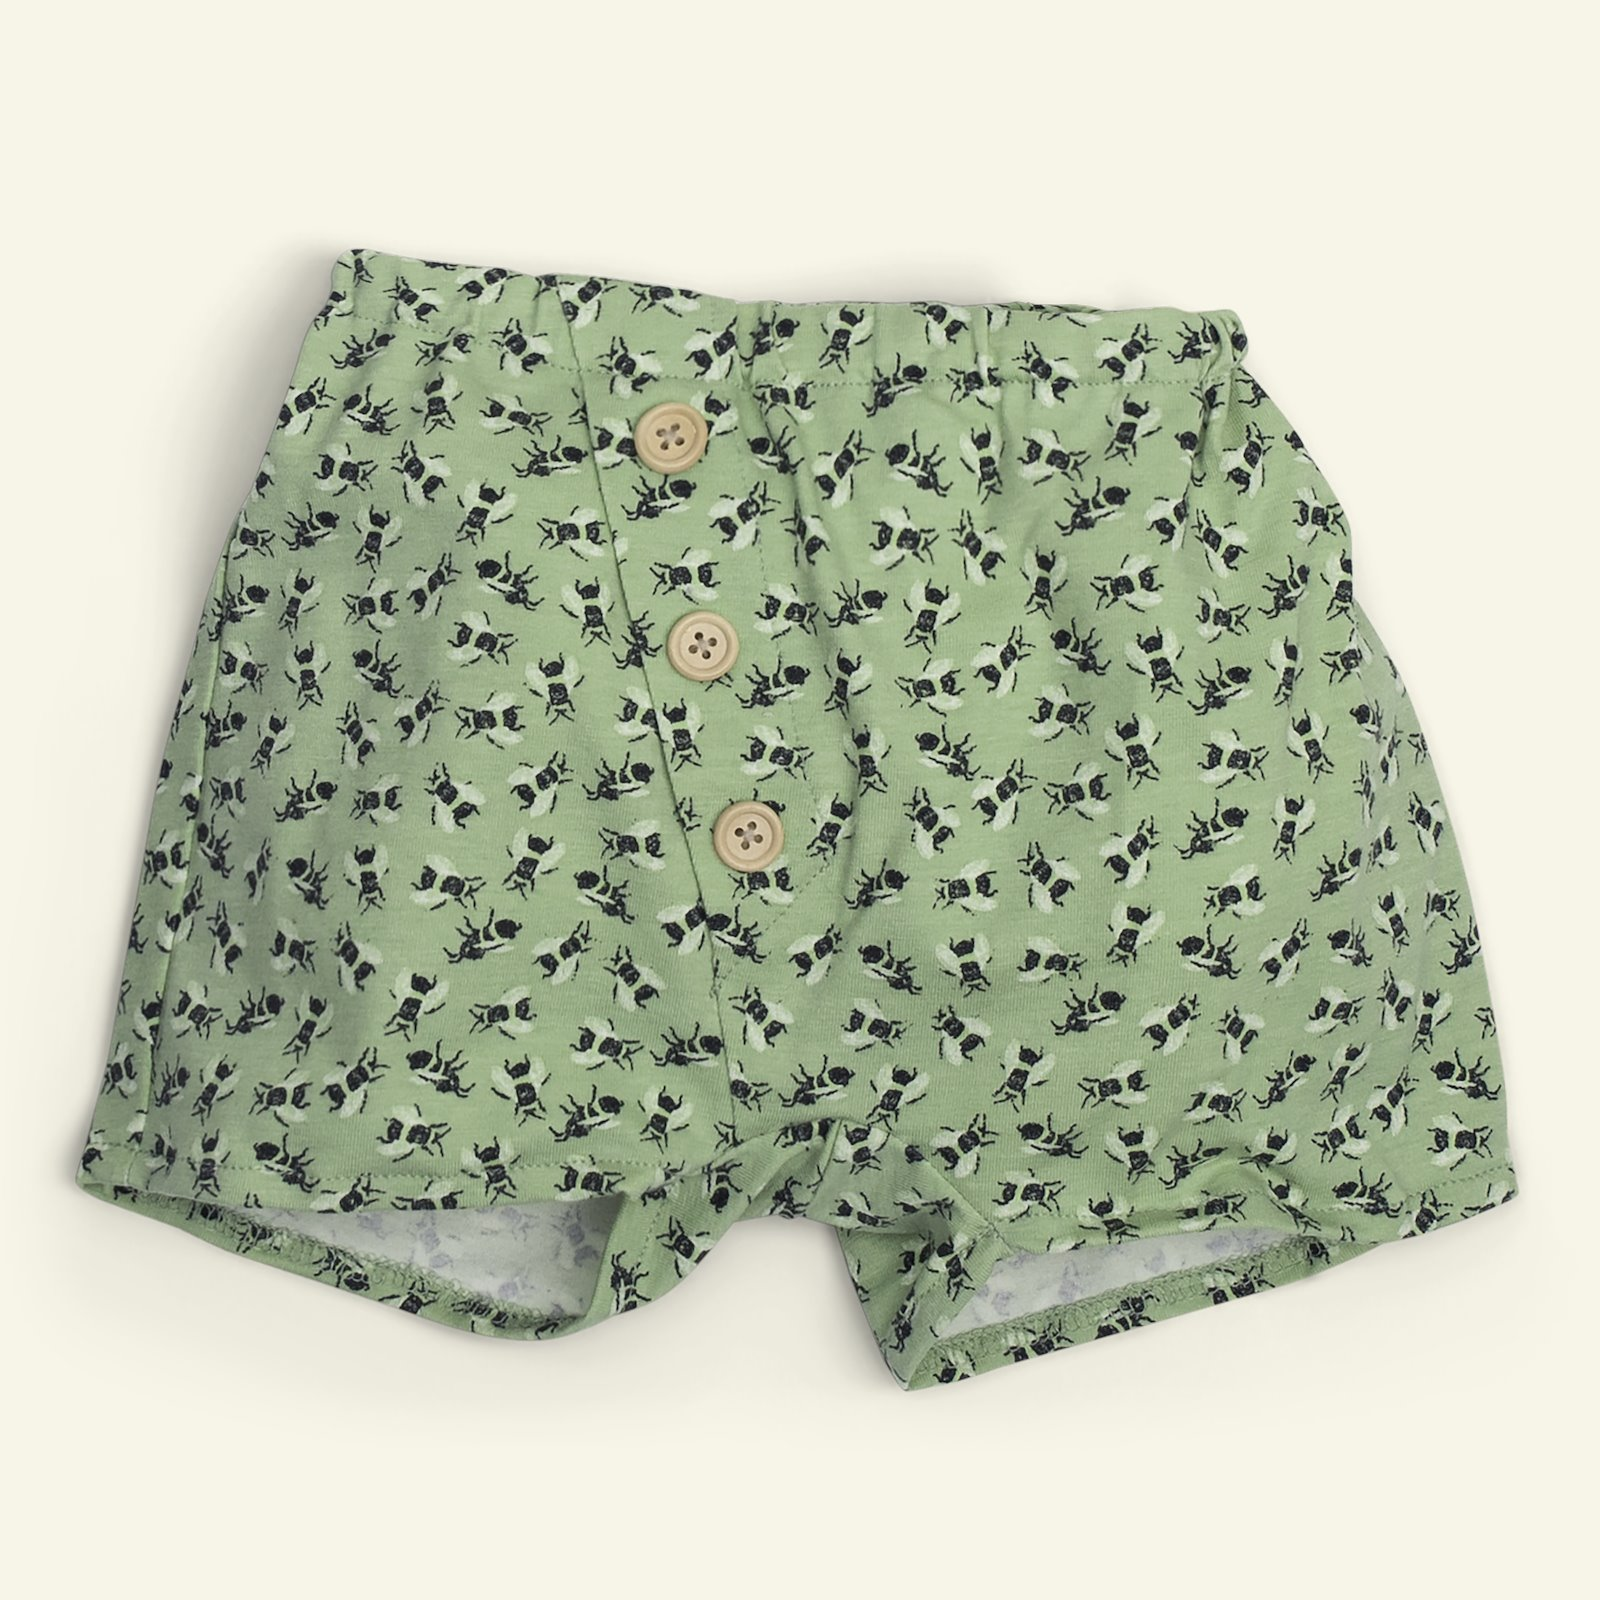 Trousers and shorts, 74/9m p80008_272731_33504_sskit